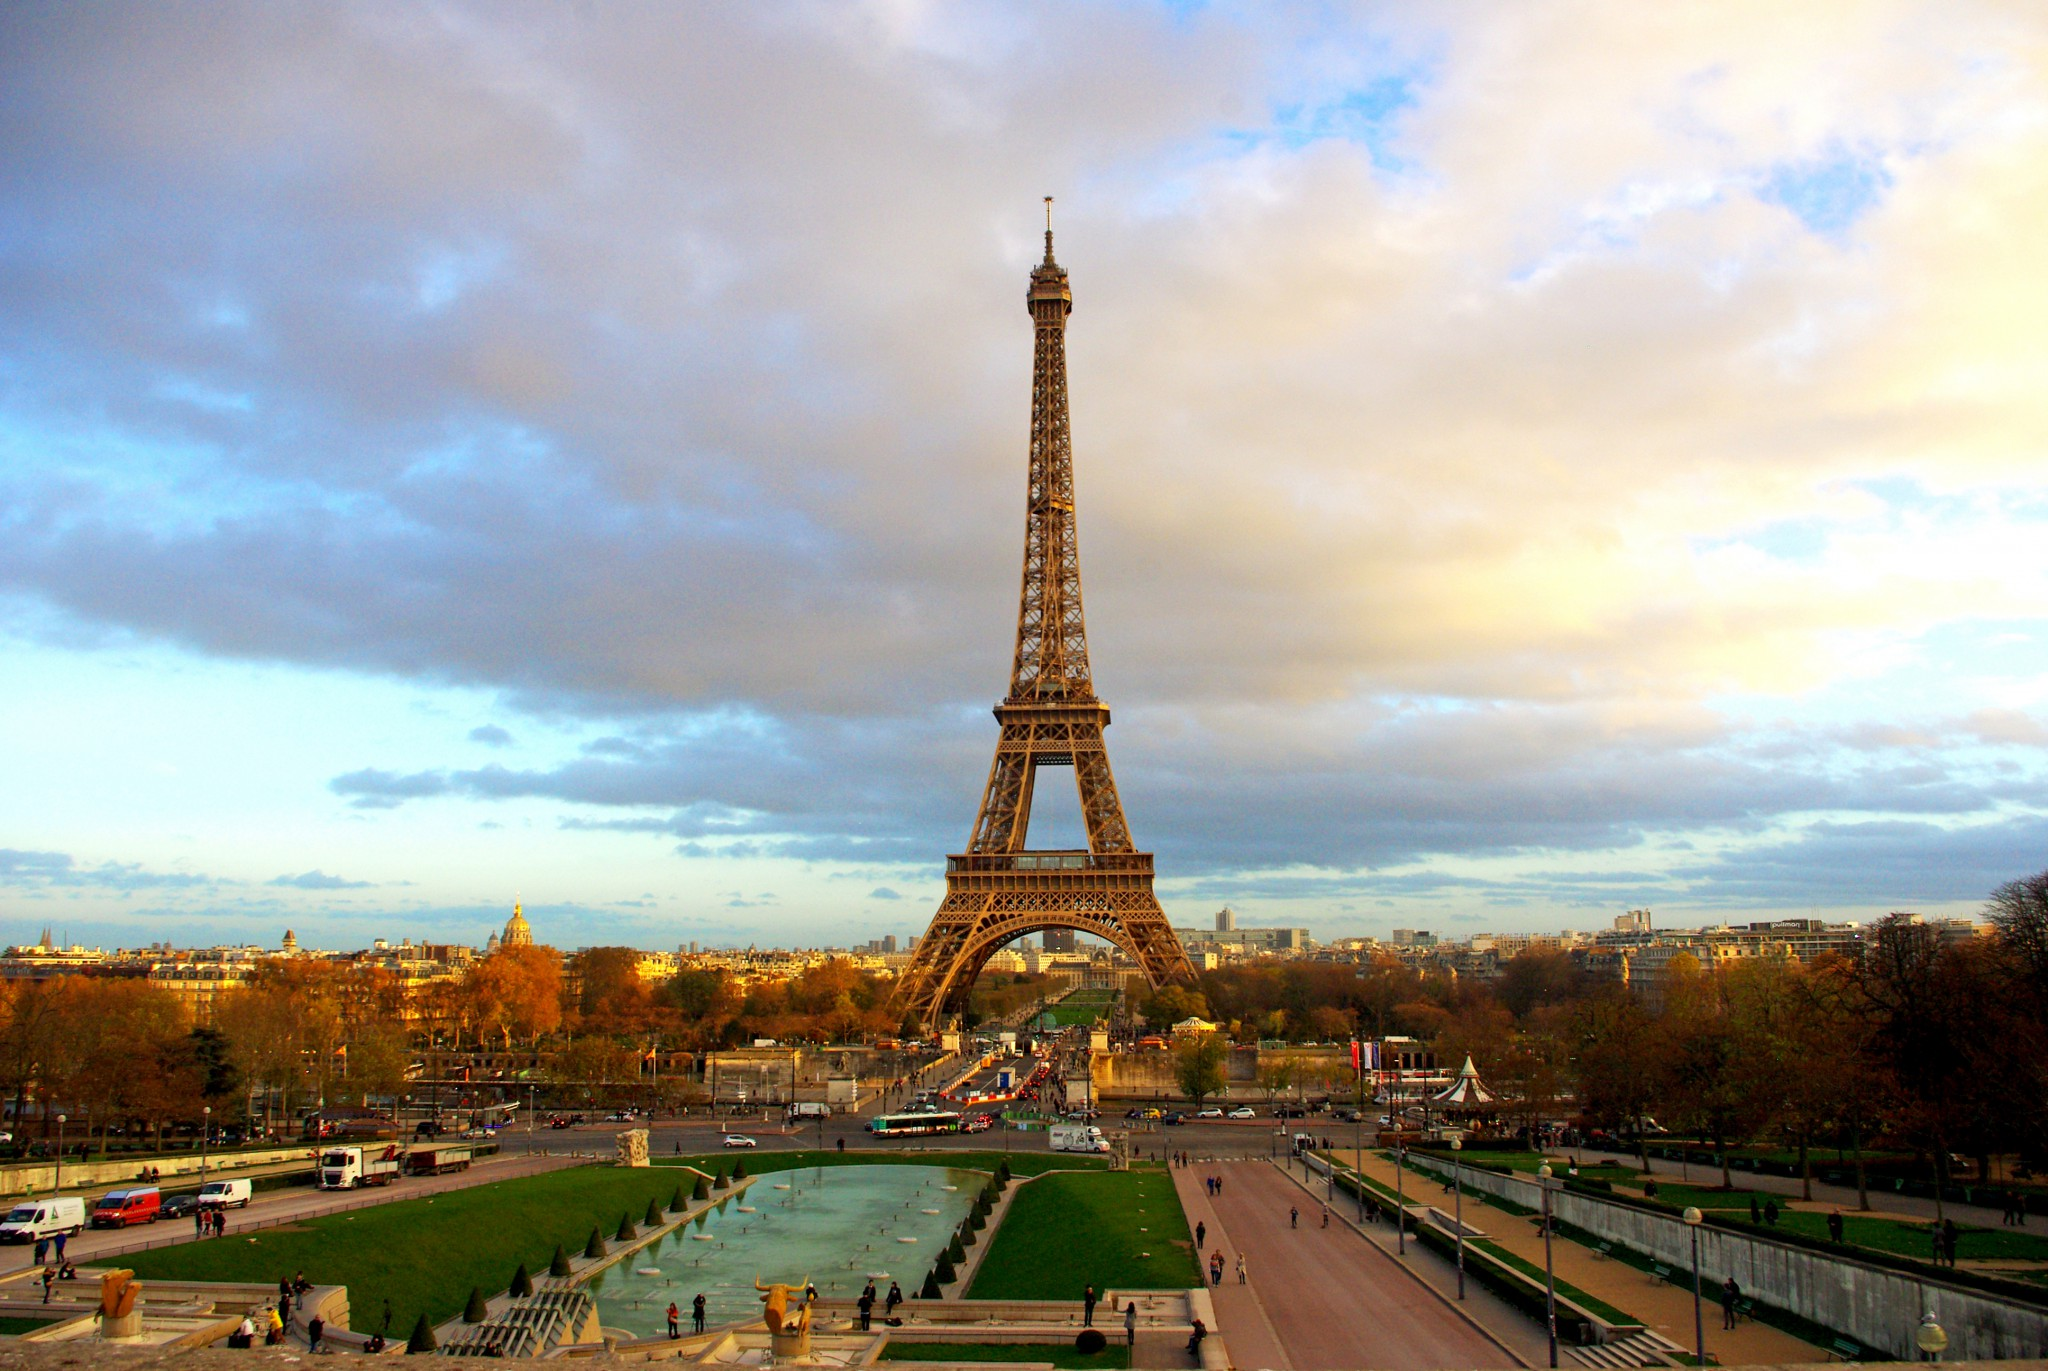 Fact About Eiffel Tower Eiffel Tower Facts You Probably Didnut Know